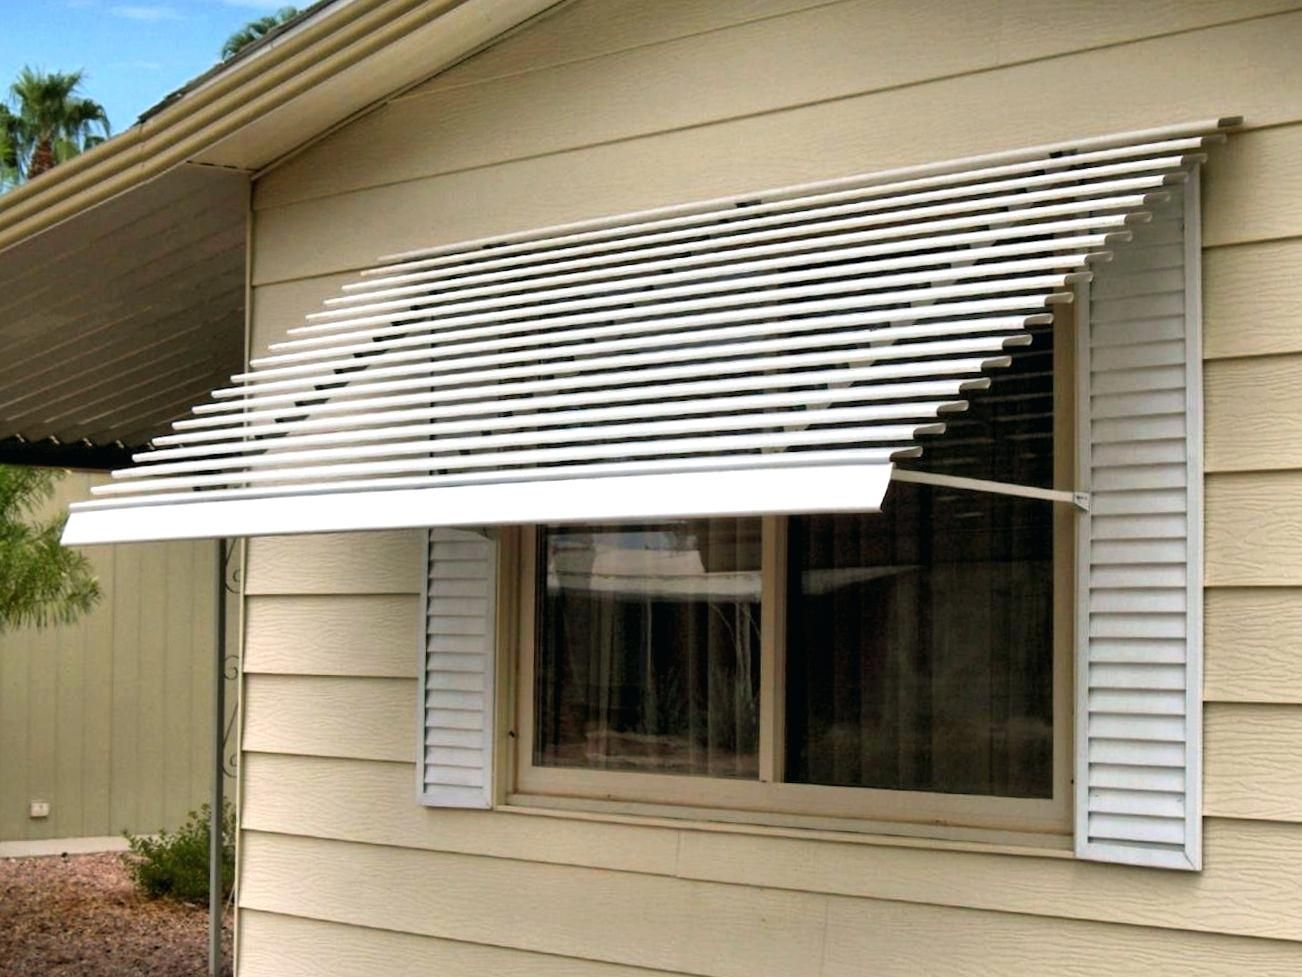 Window Awning Design Mobile Home Awnings Superior Awning